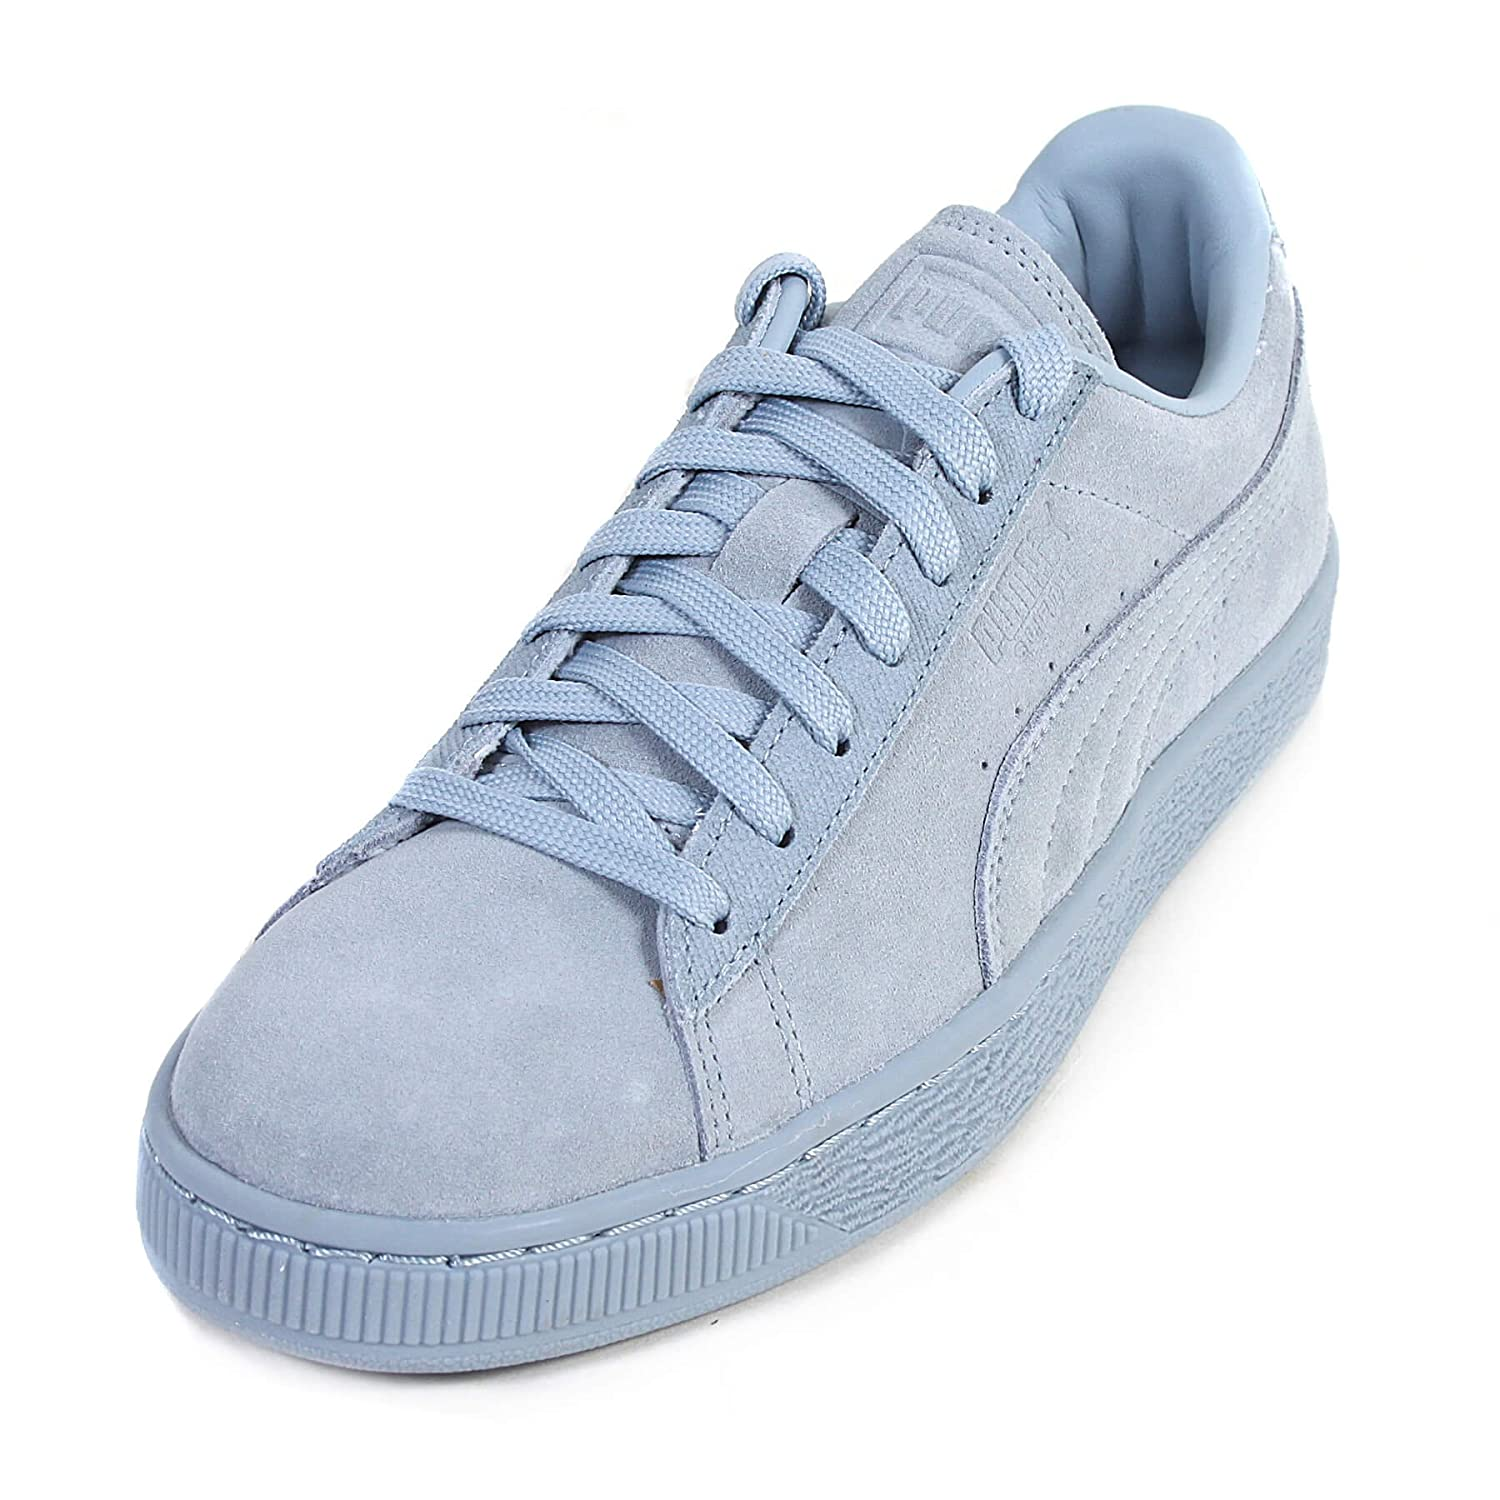 Puma Women's Suede Classic Tonal Lace Up Trainer Fog-Blue-3 Size 3